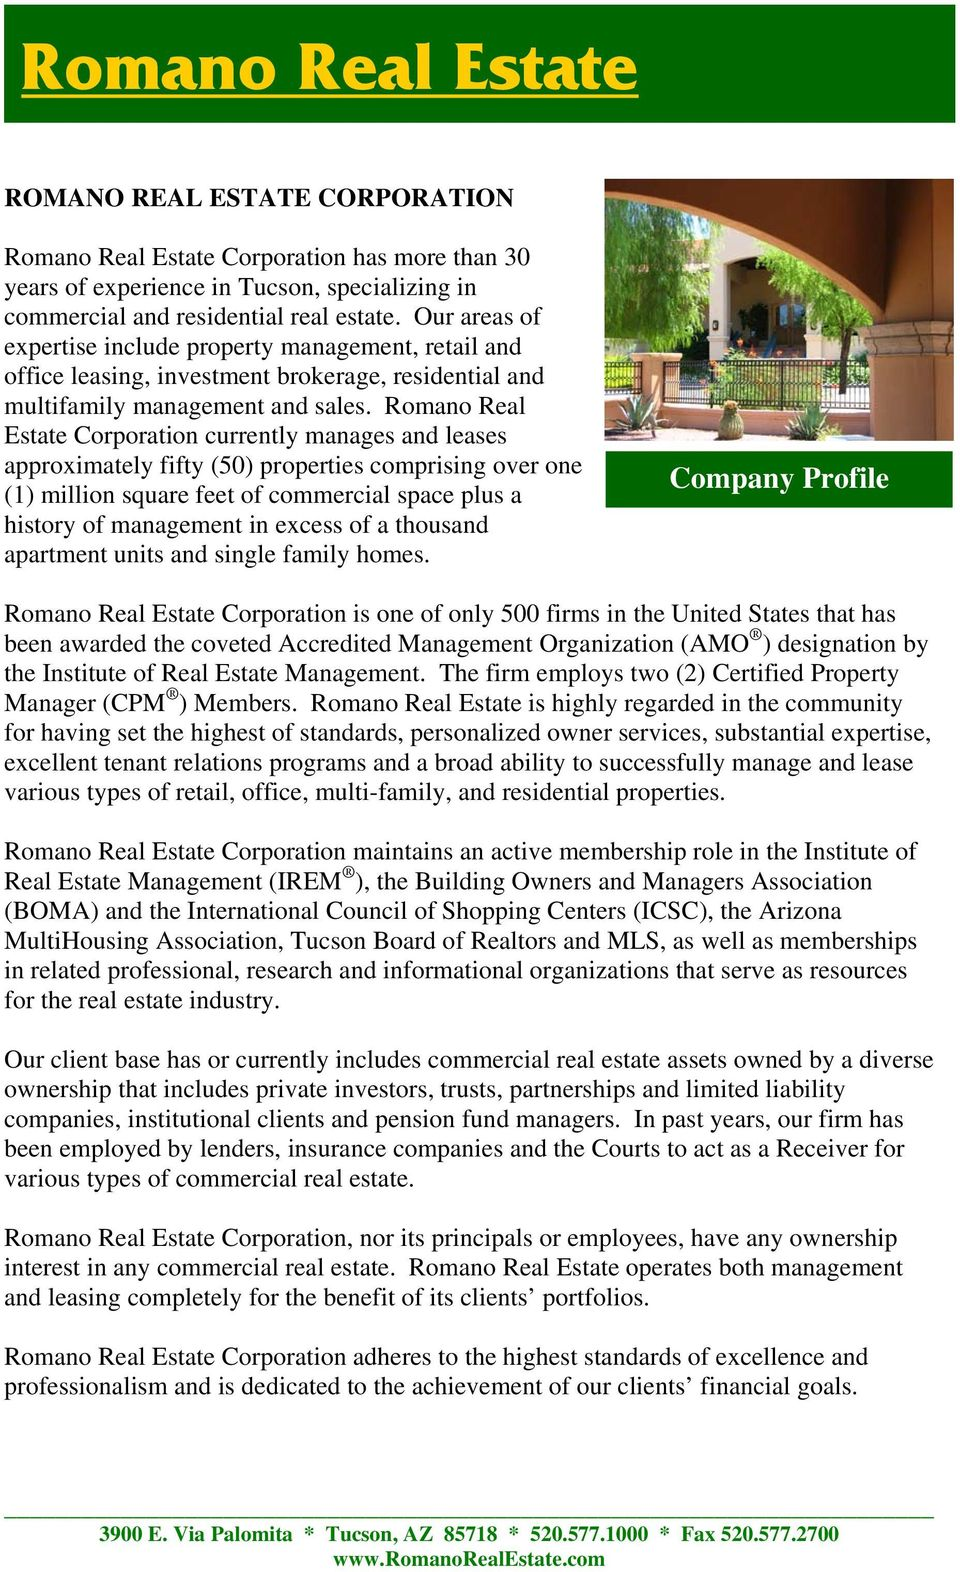 Romano Real Estate Corporation currently manages and leases approximately fifty (50) properties comprising over one (1) million square feet of commercial space plus a history of management in excess